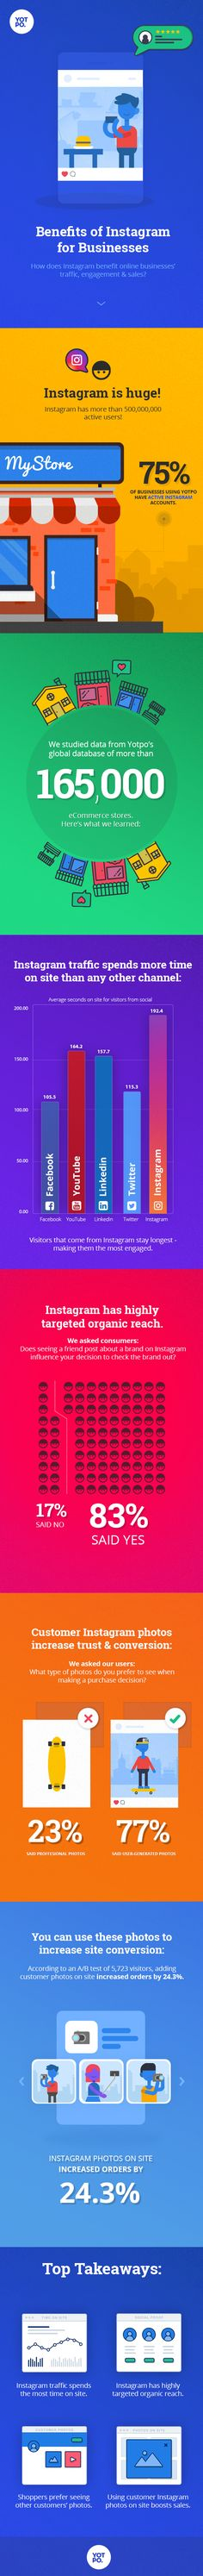 Harnessing Instagram is one of the single most impactful moves you can make…